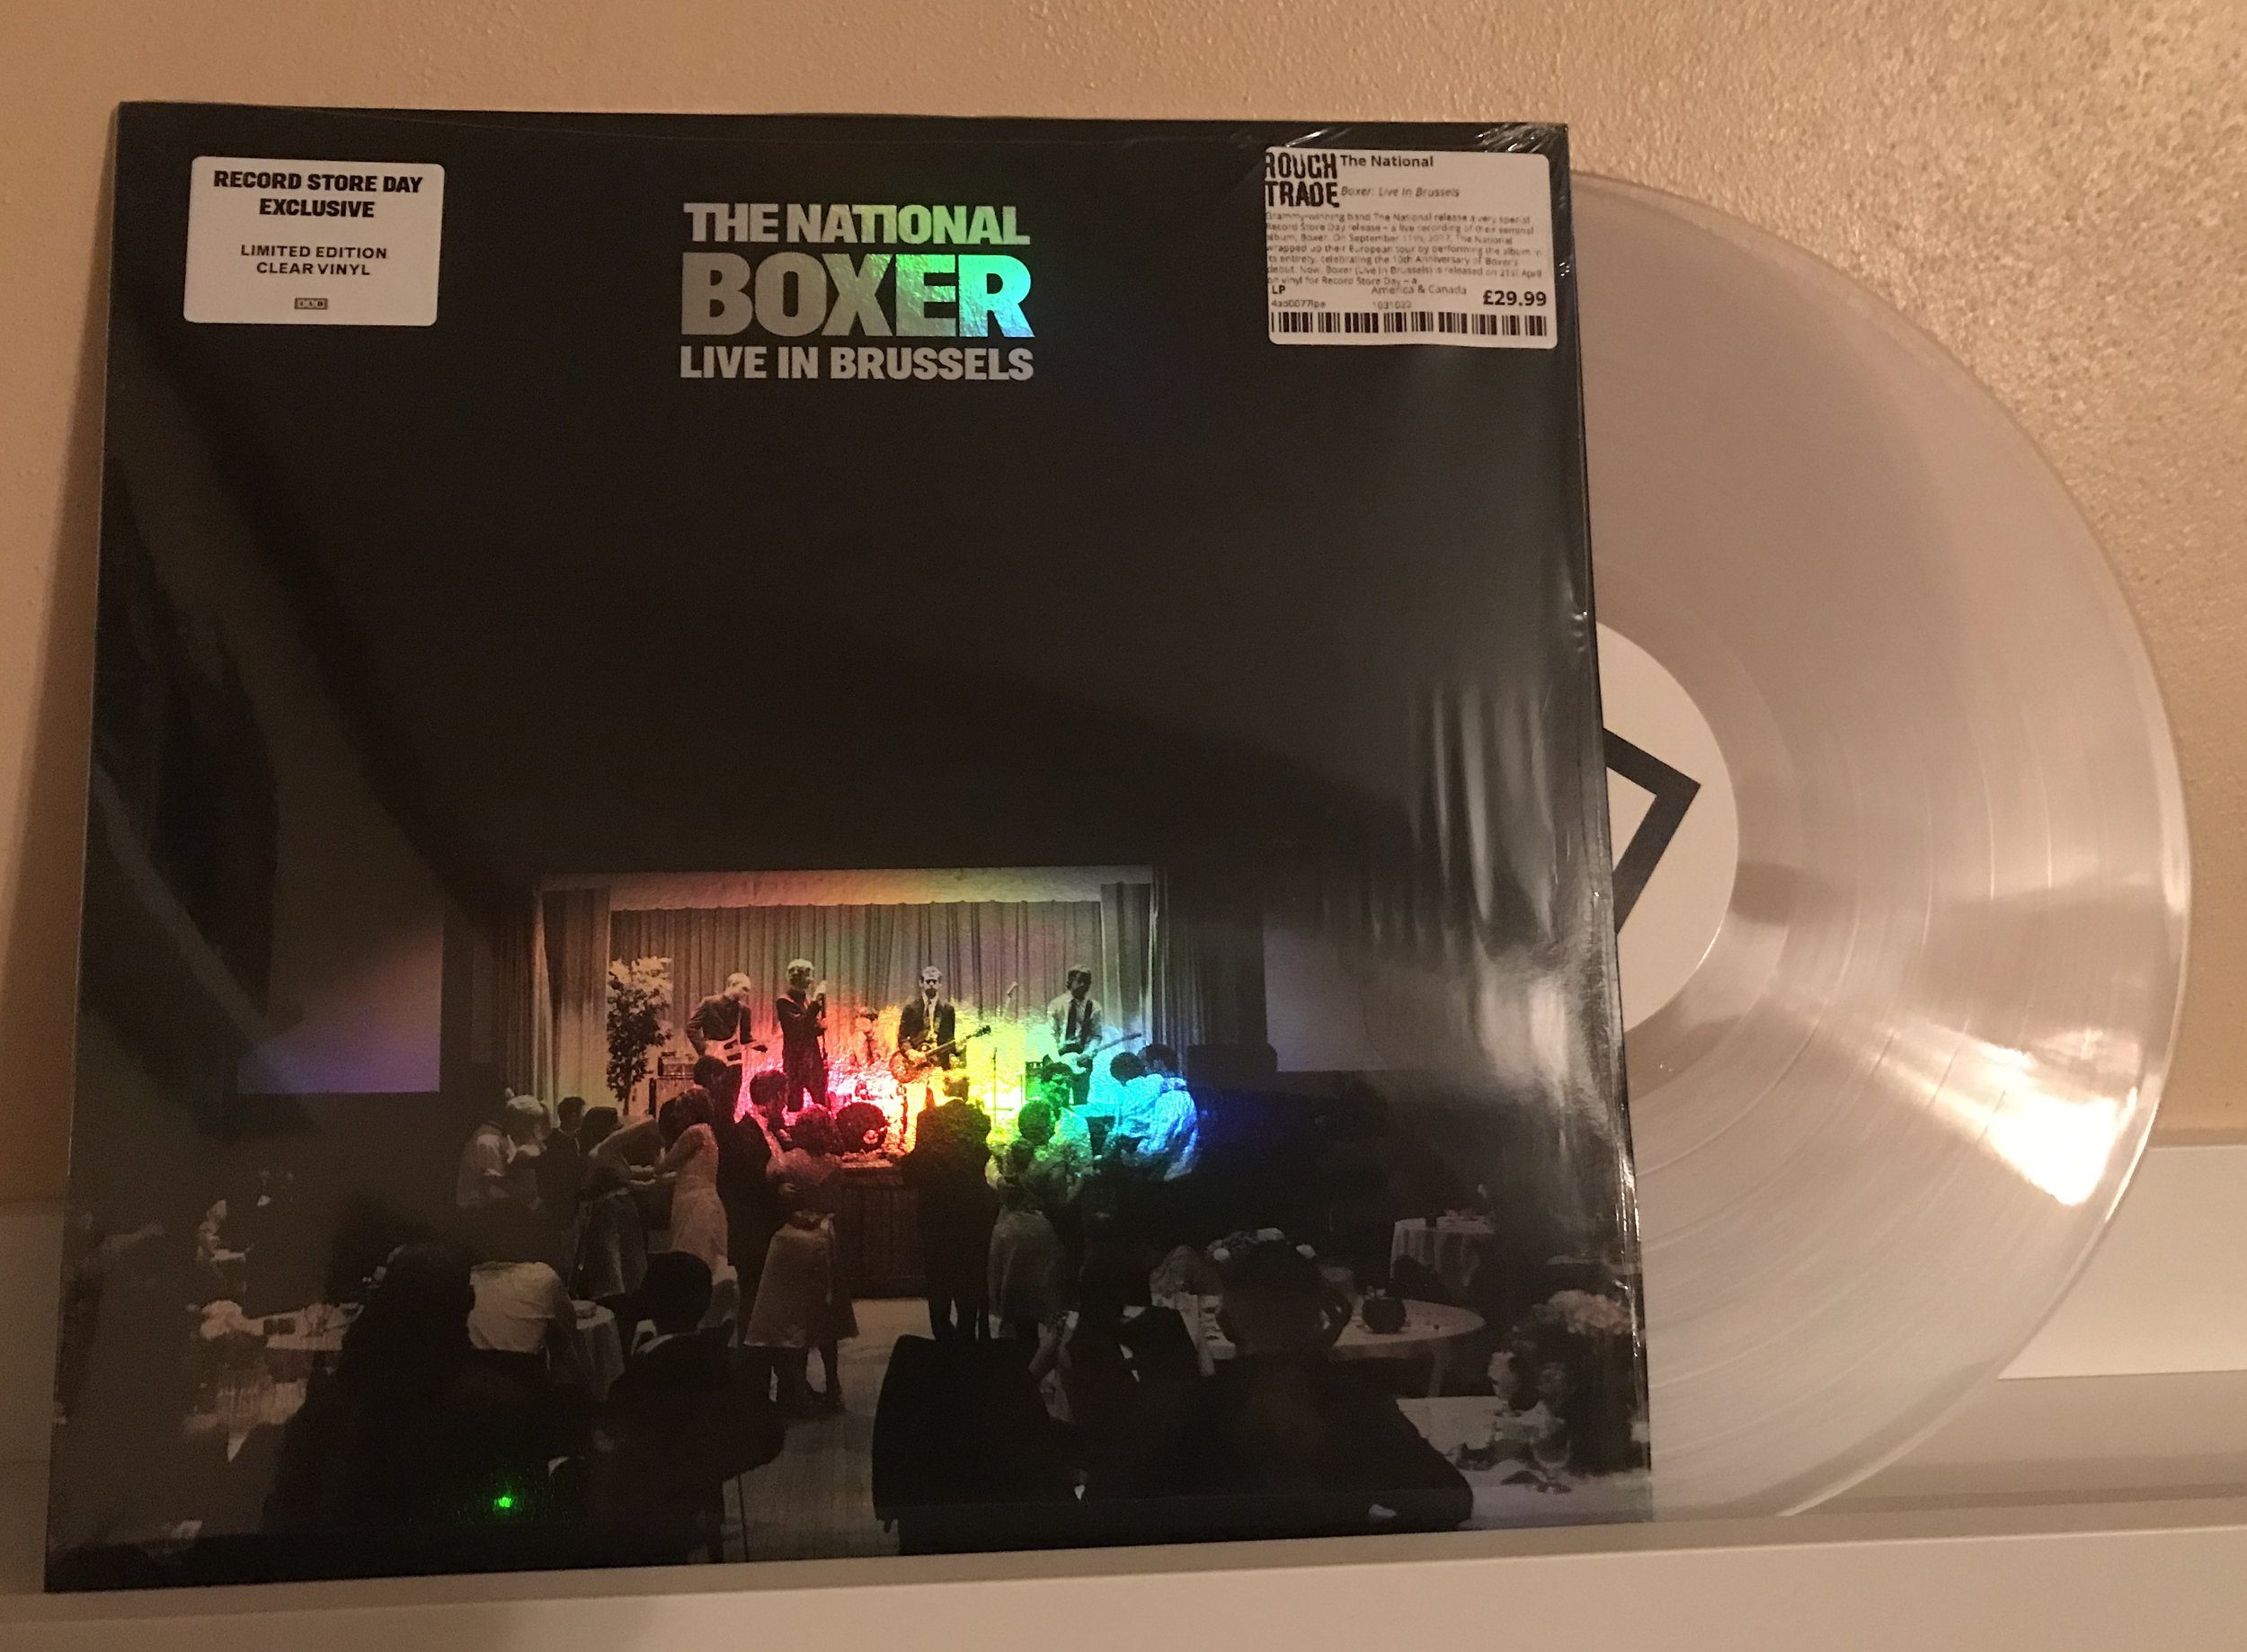 The National - Boxer: Live in Brussels (2018 Record Store Day Exculsive)